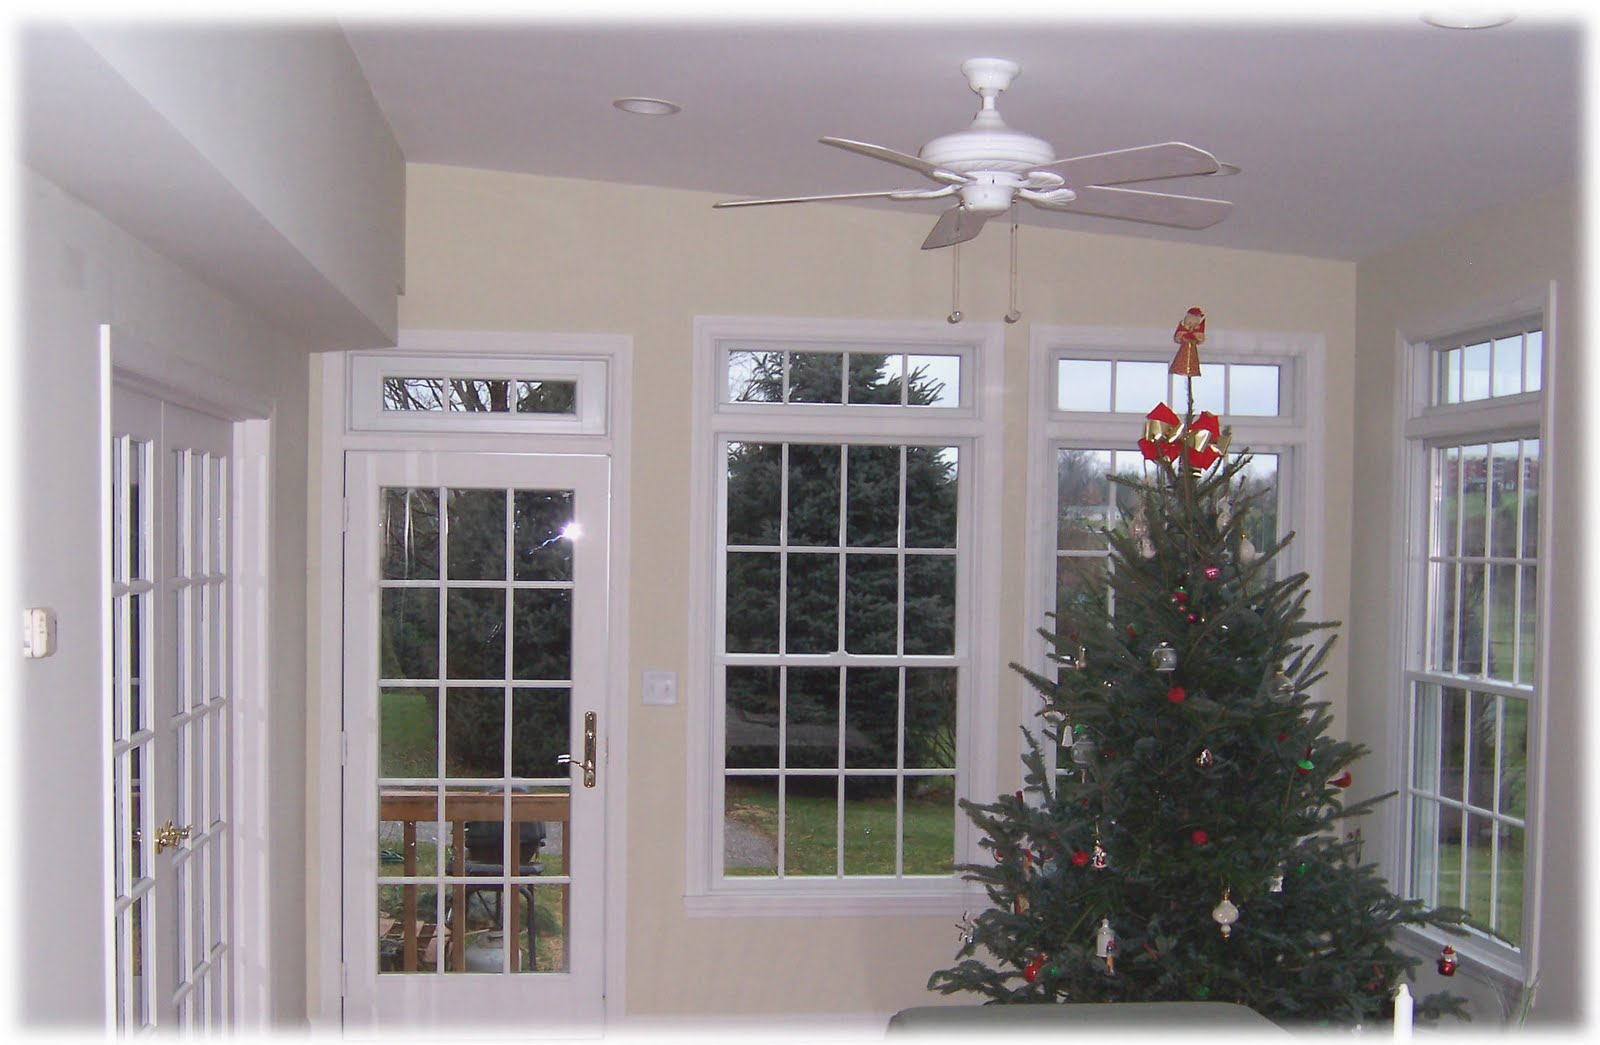 All about window window designs modern or old fashioned for Simple window designs for homes